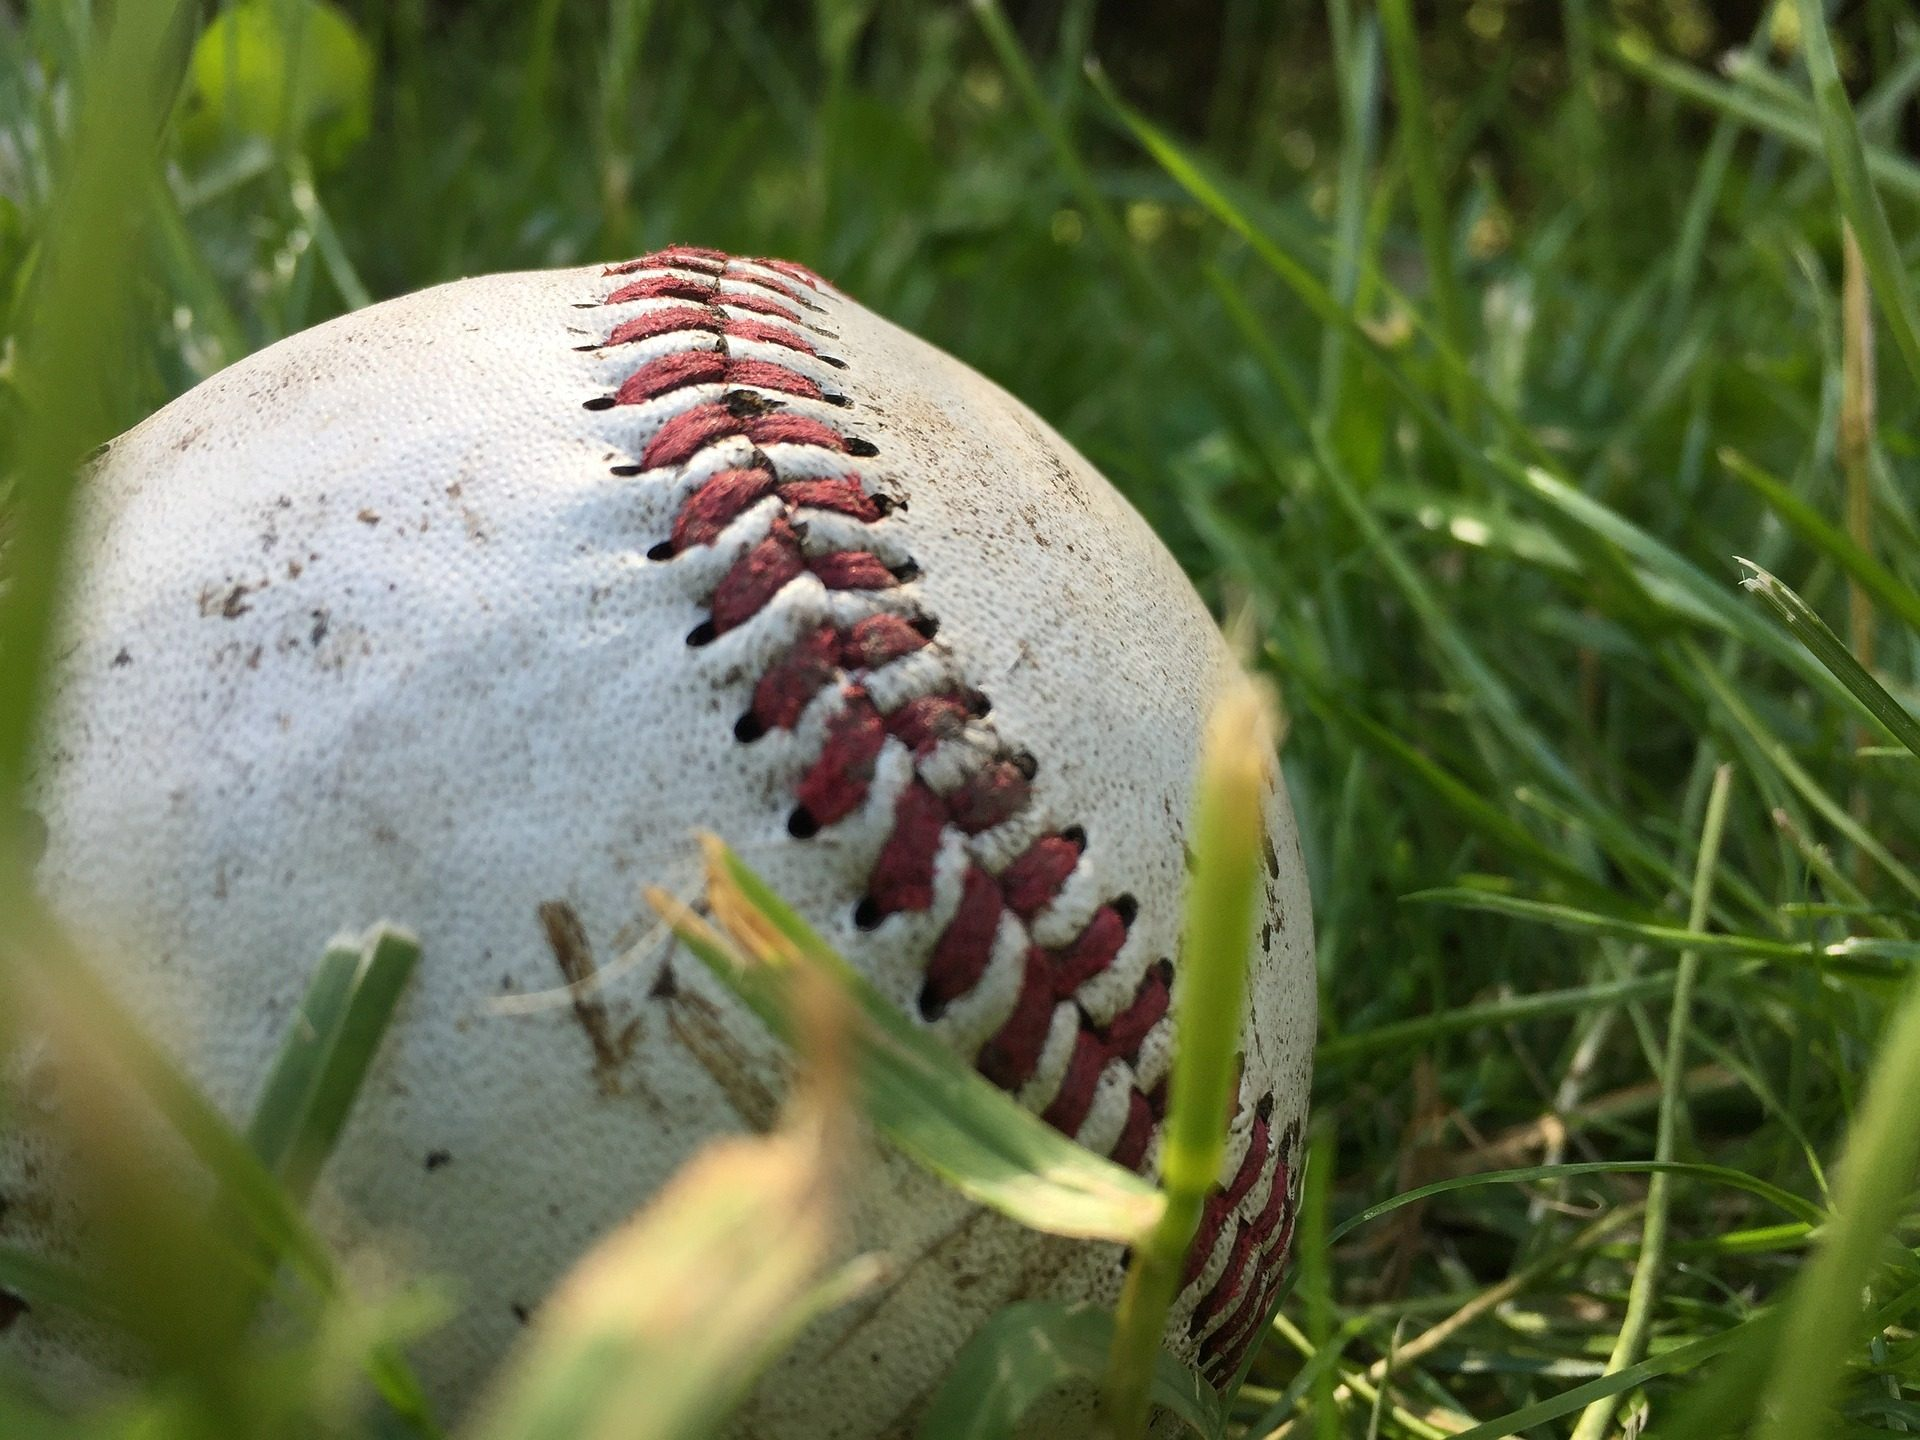 bola, Kugel, Baseball, Boden, Grass, Feld - Wallpaper HD - Prof.-falken.com